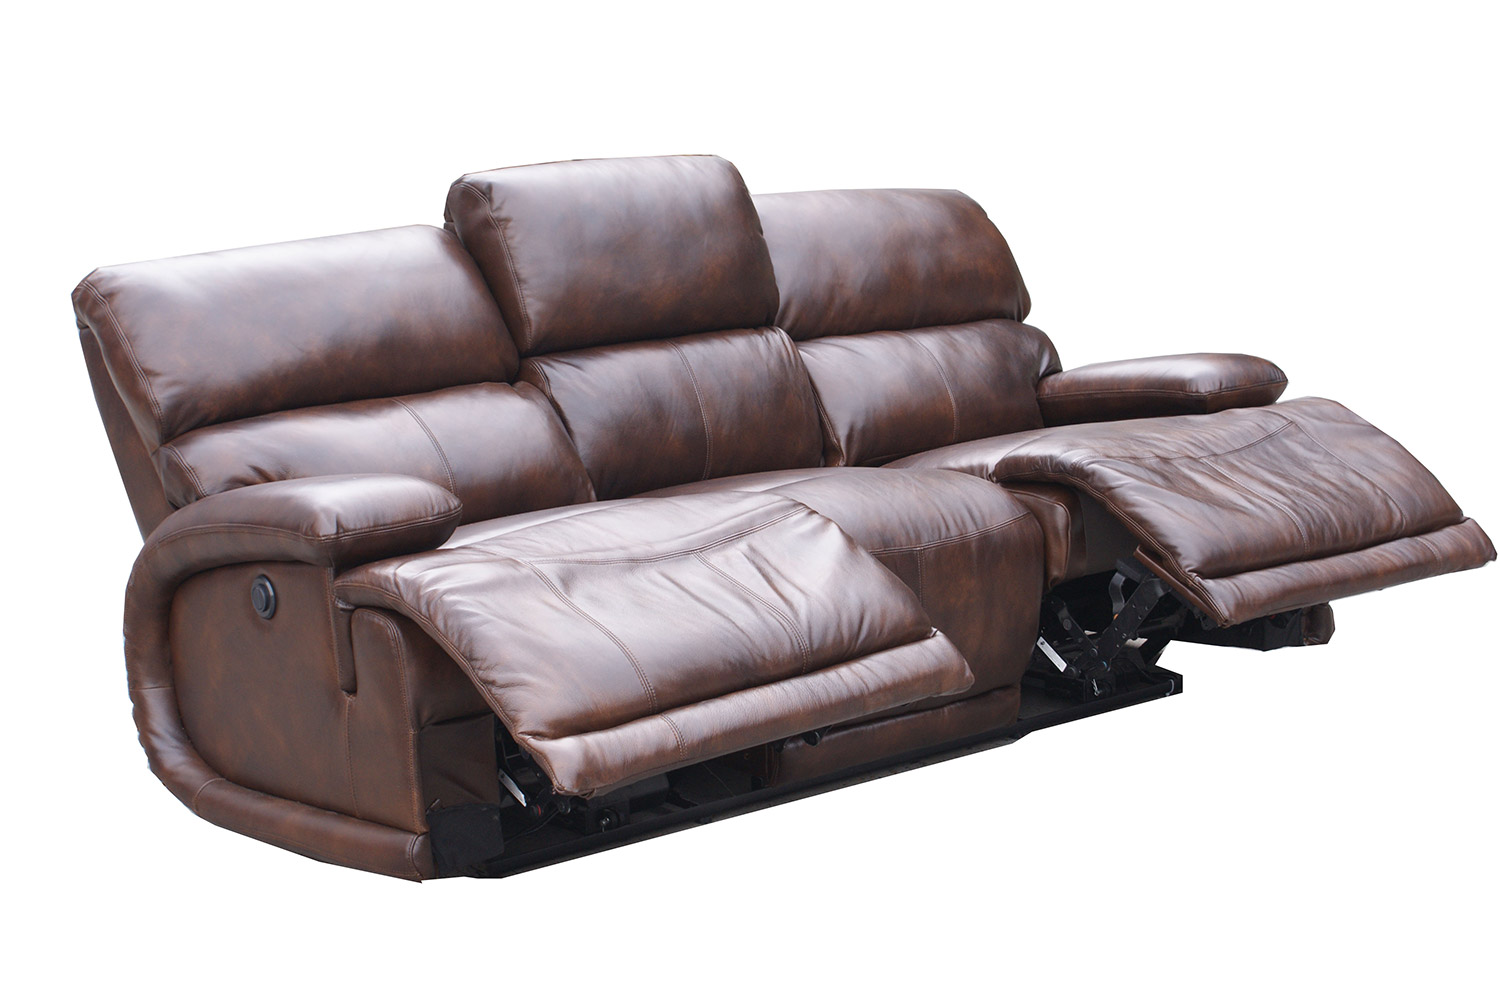 barcalounger hudson ll casual comforts power reclining. Black Bedroom Furniture Sets. Home Design Ideas